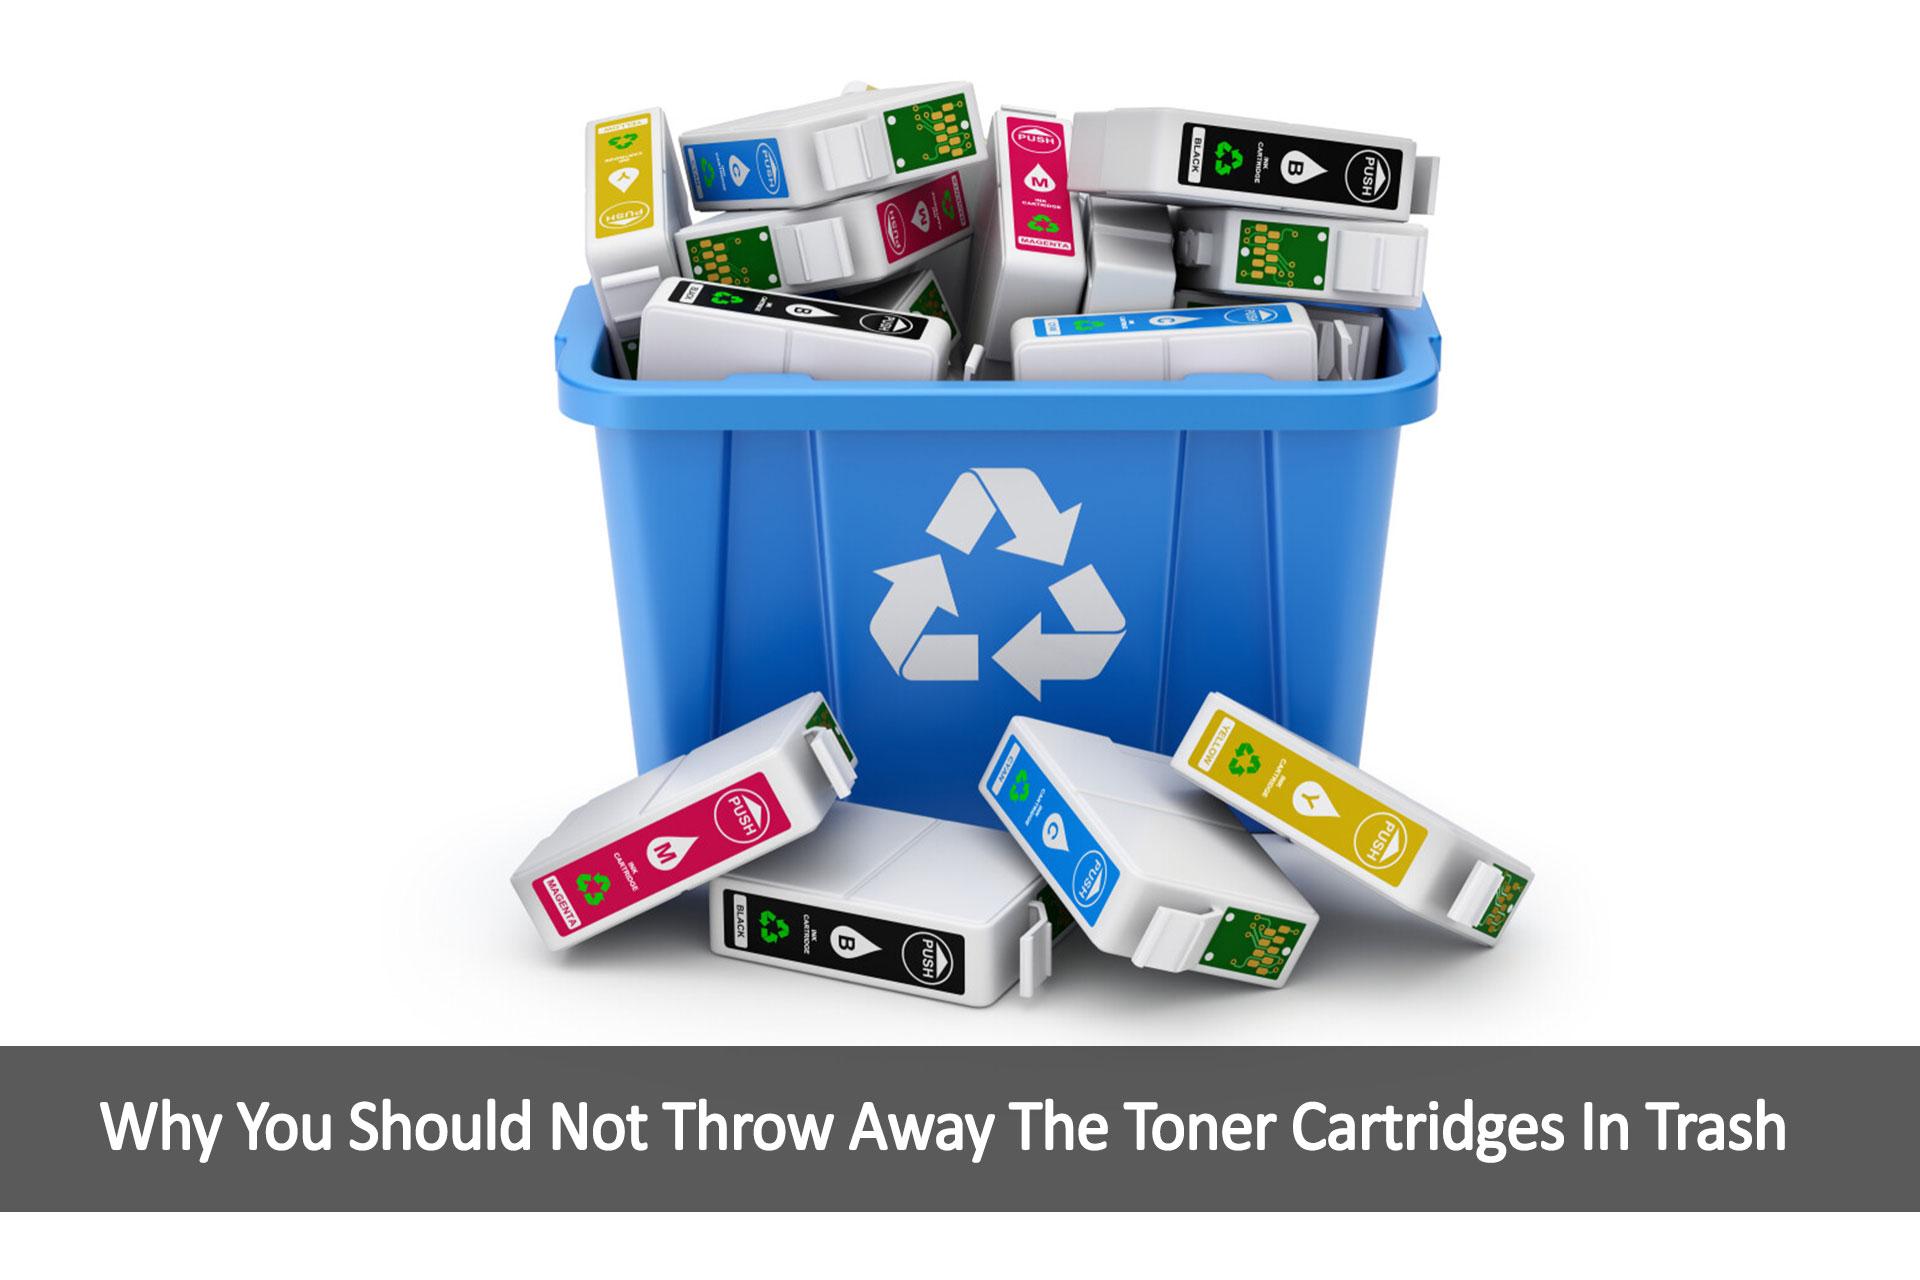 Why You Should Not Throw Away The Toner Cartridges In Trash